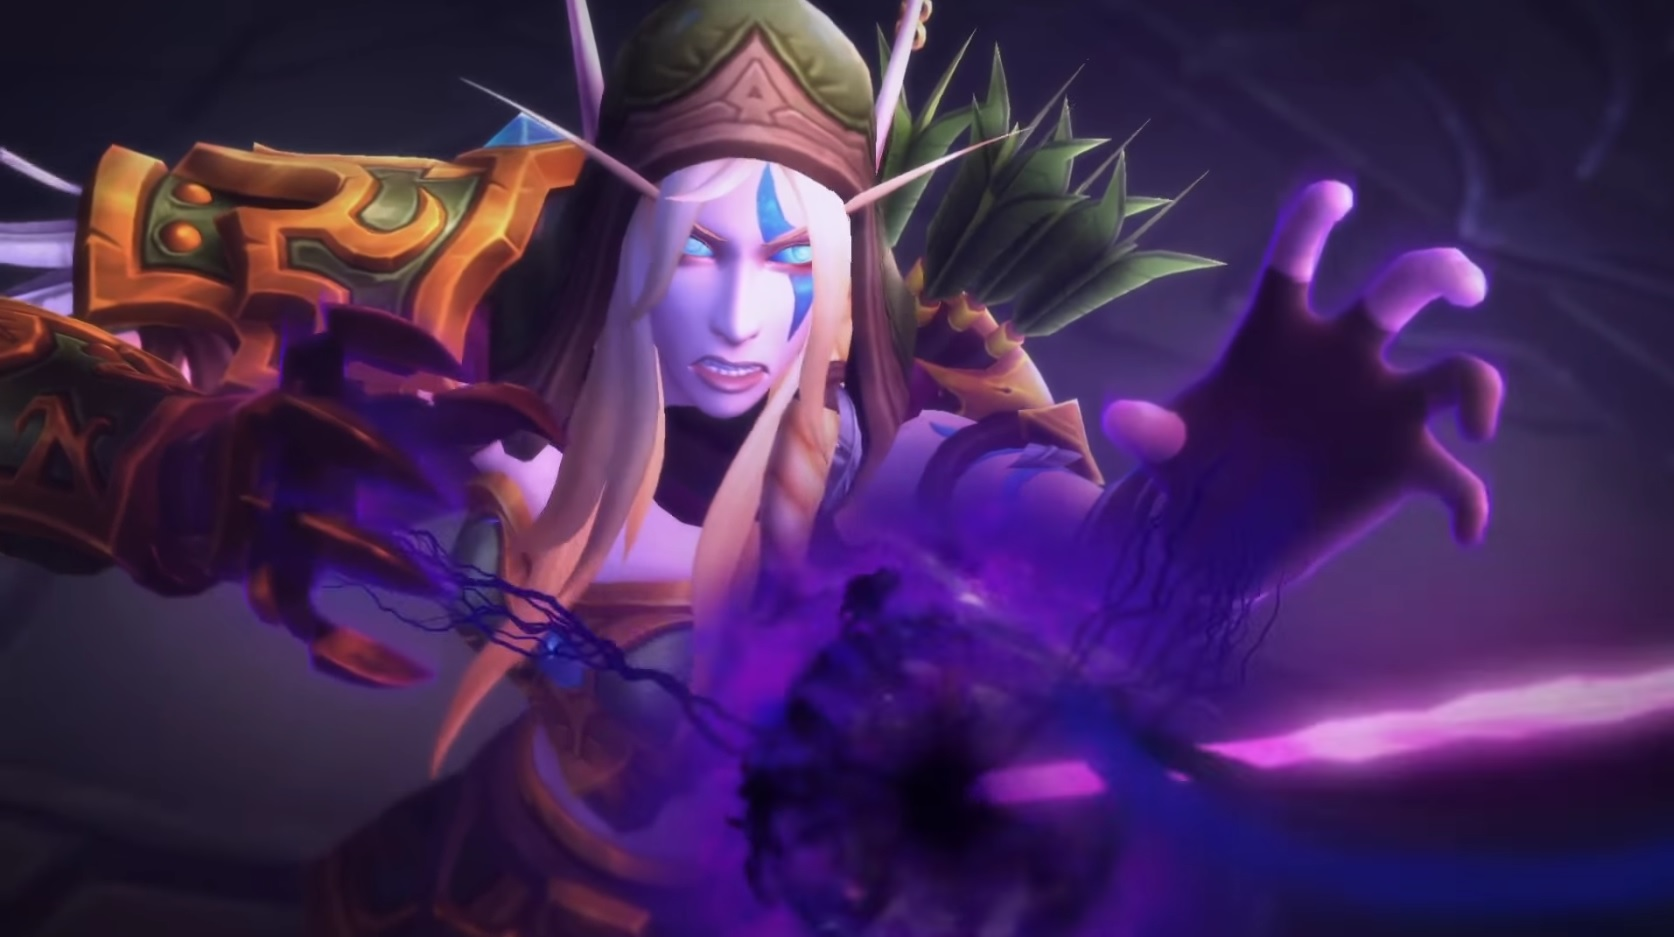 WoW Alleria Drinking the Void